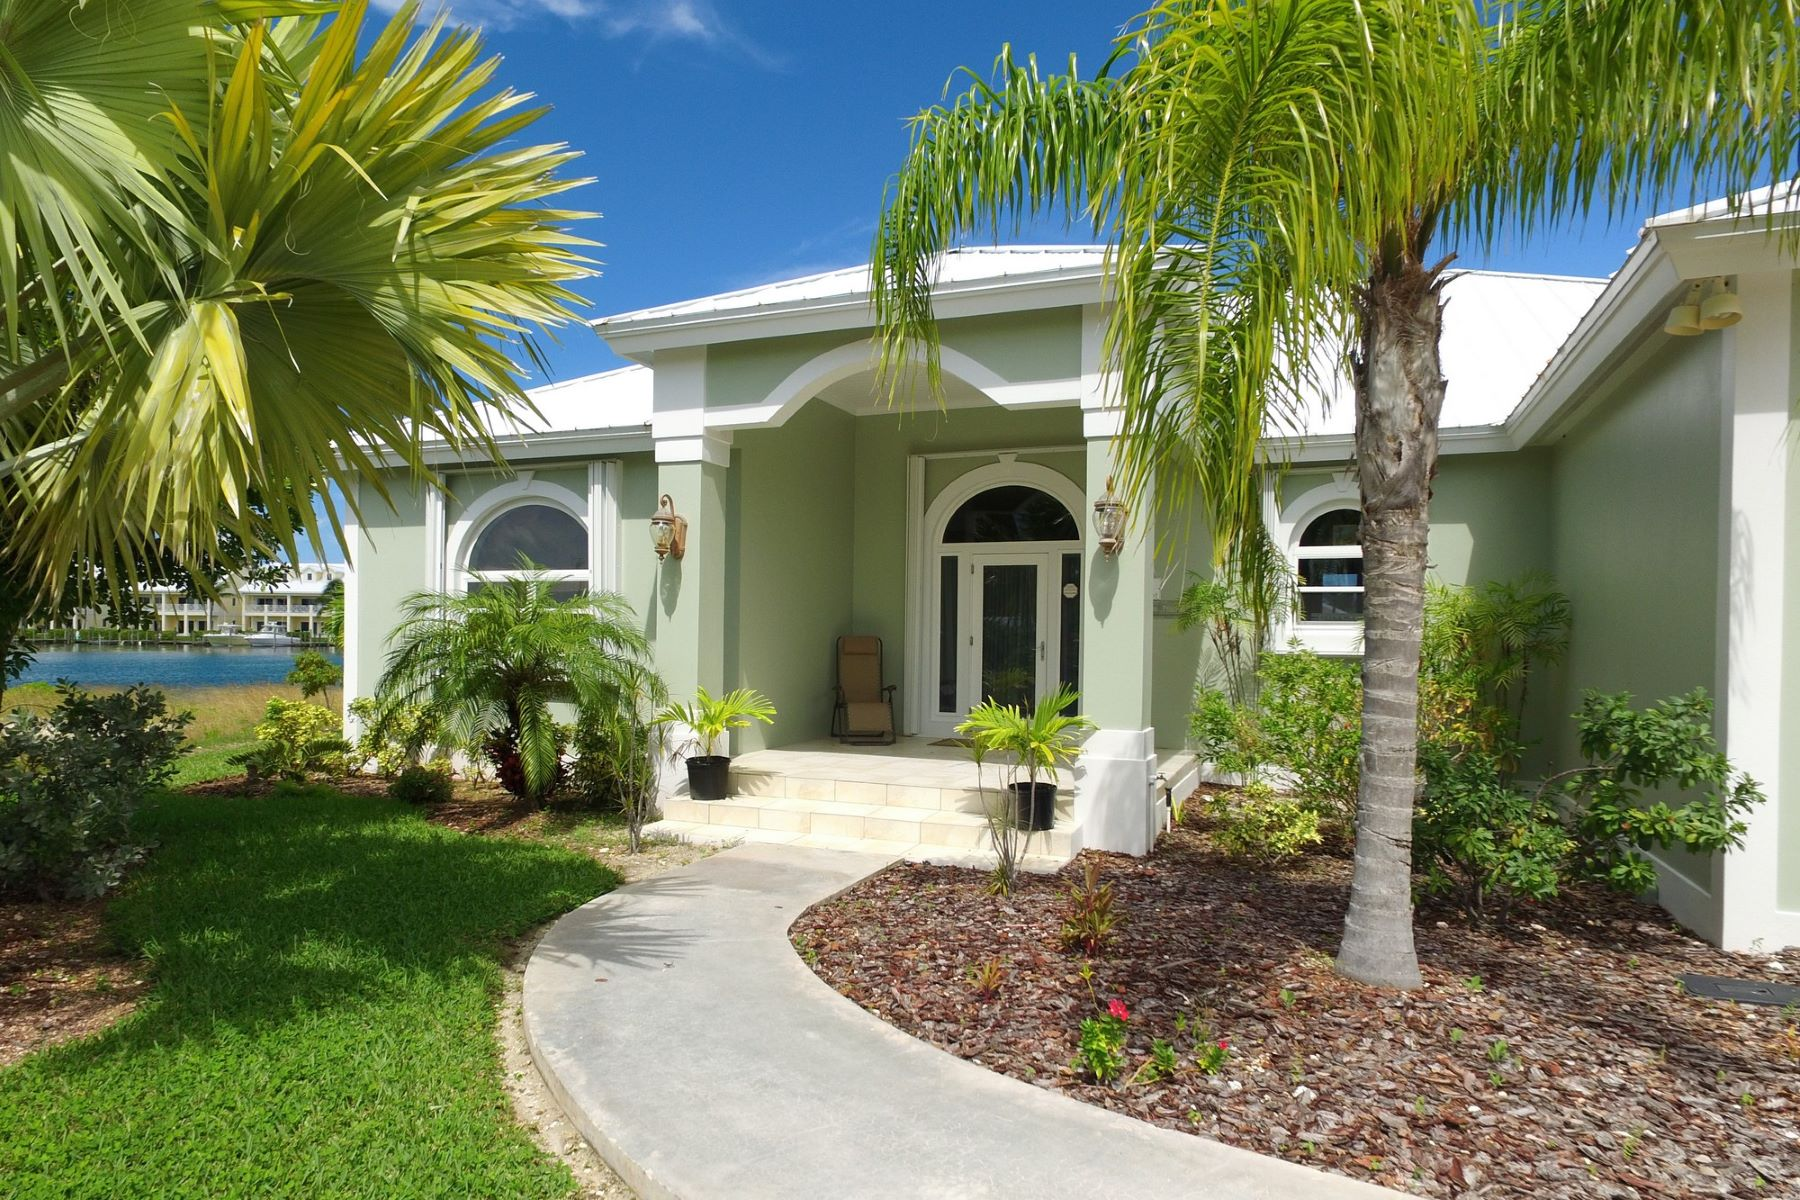 Single Family Home for Sale at King's Retreat Treasure Cay, Abaco Bahamas